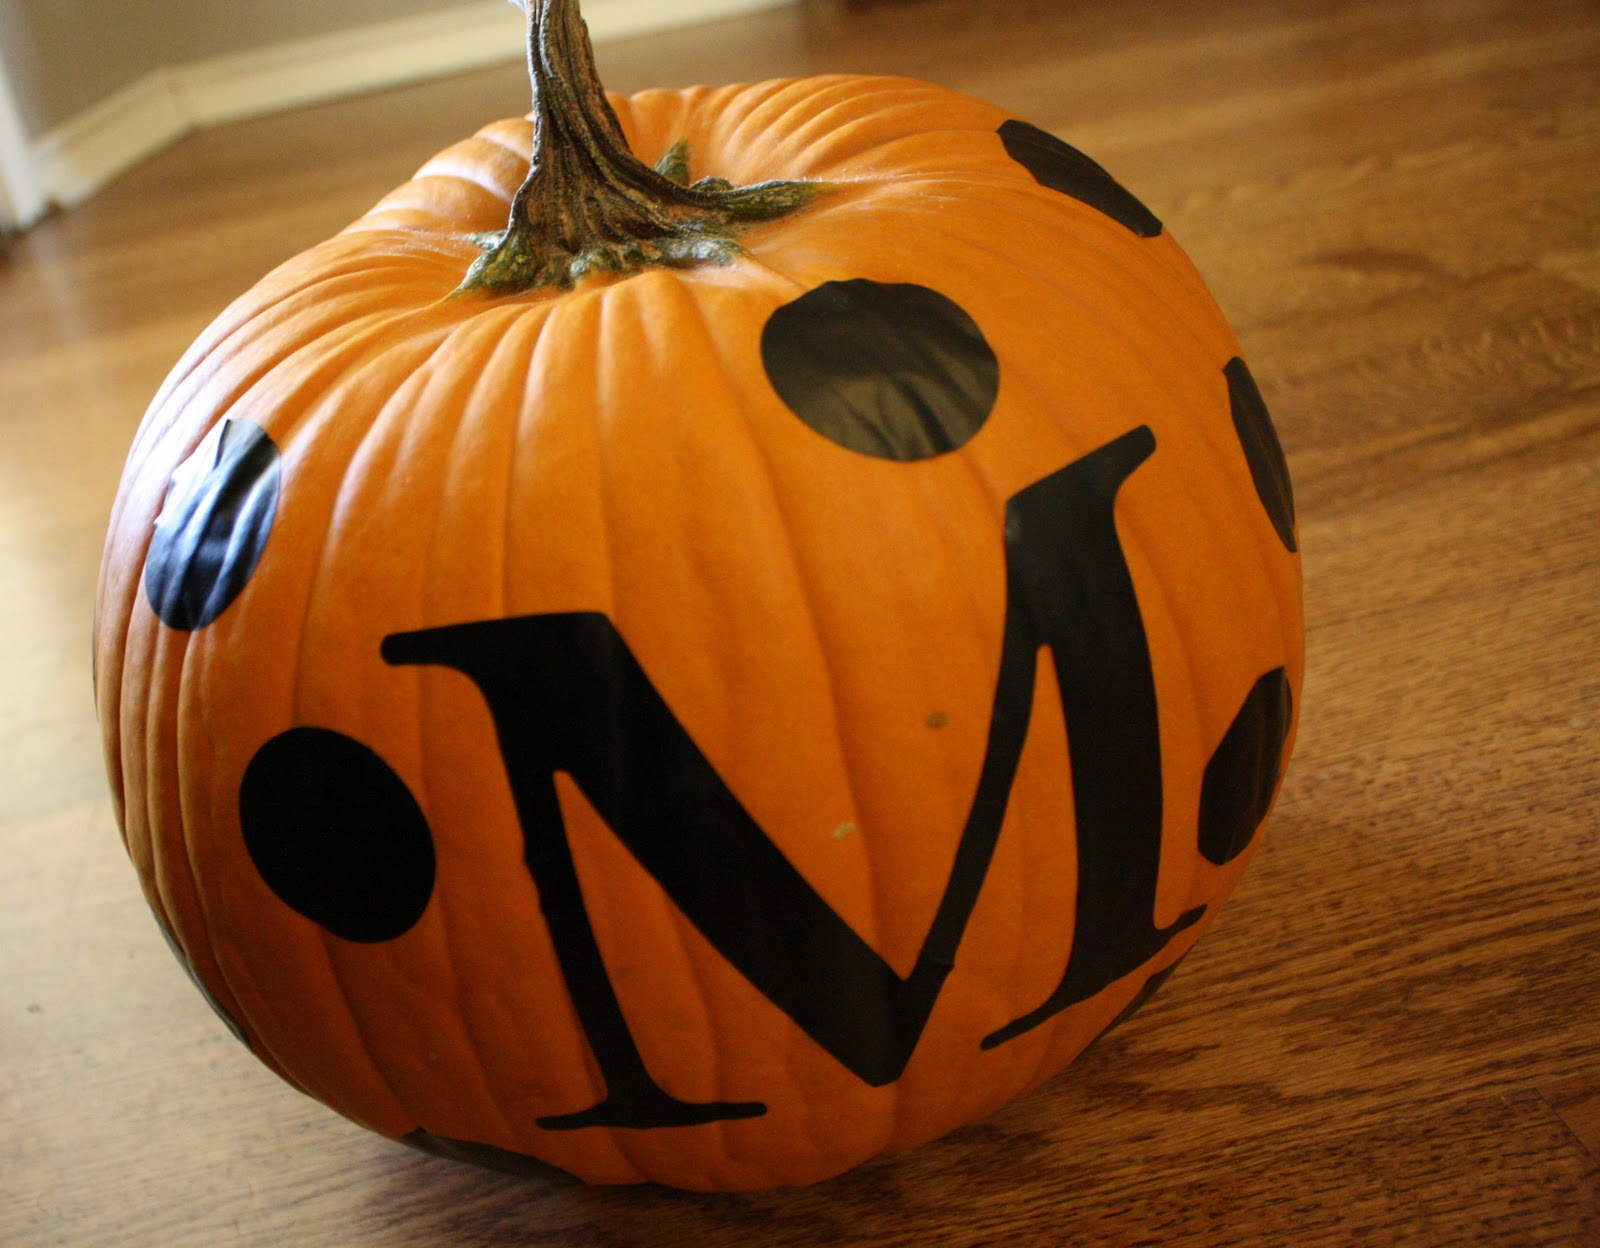 52 mantels monogrammed pumpkin for Monogram pumpkin templates